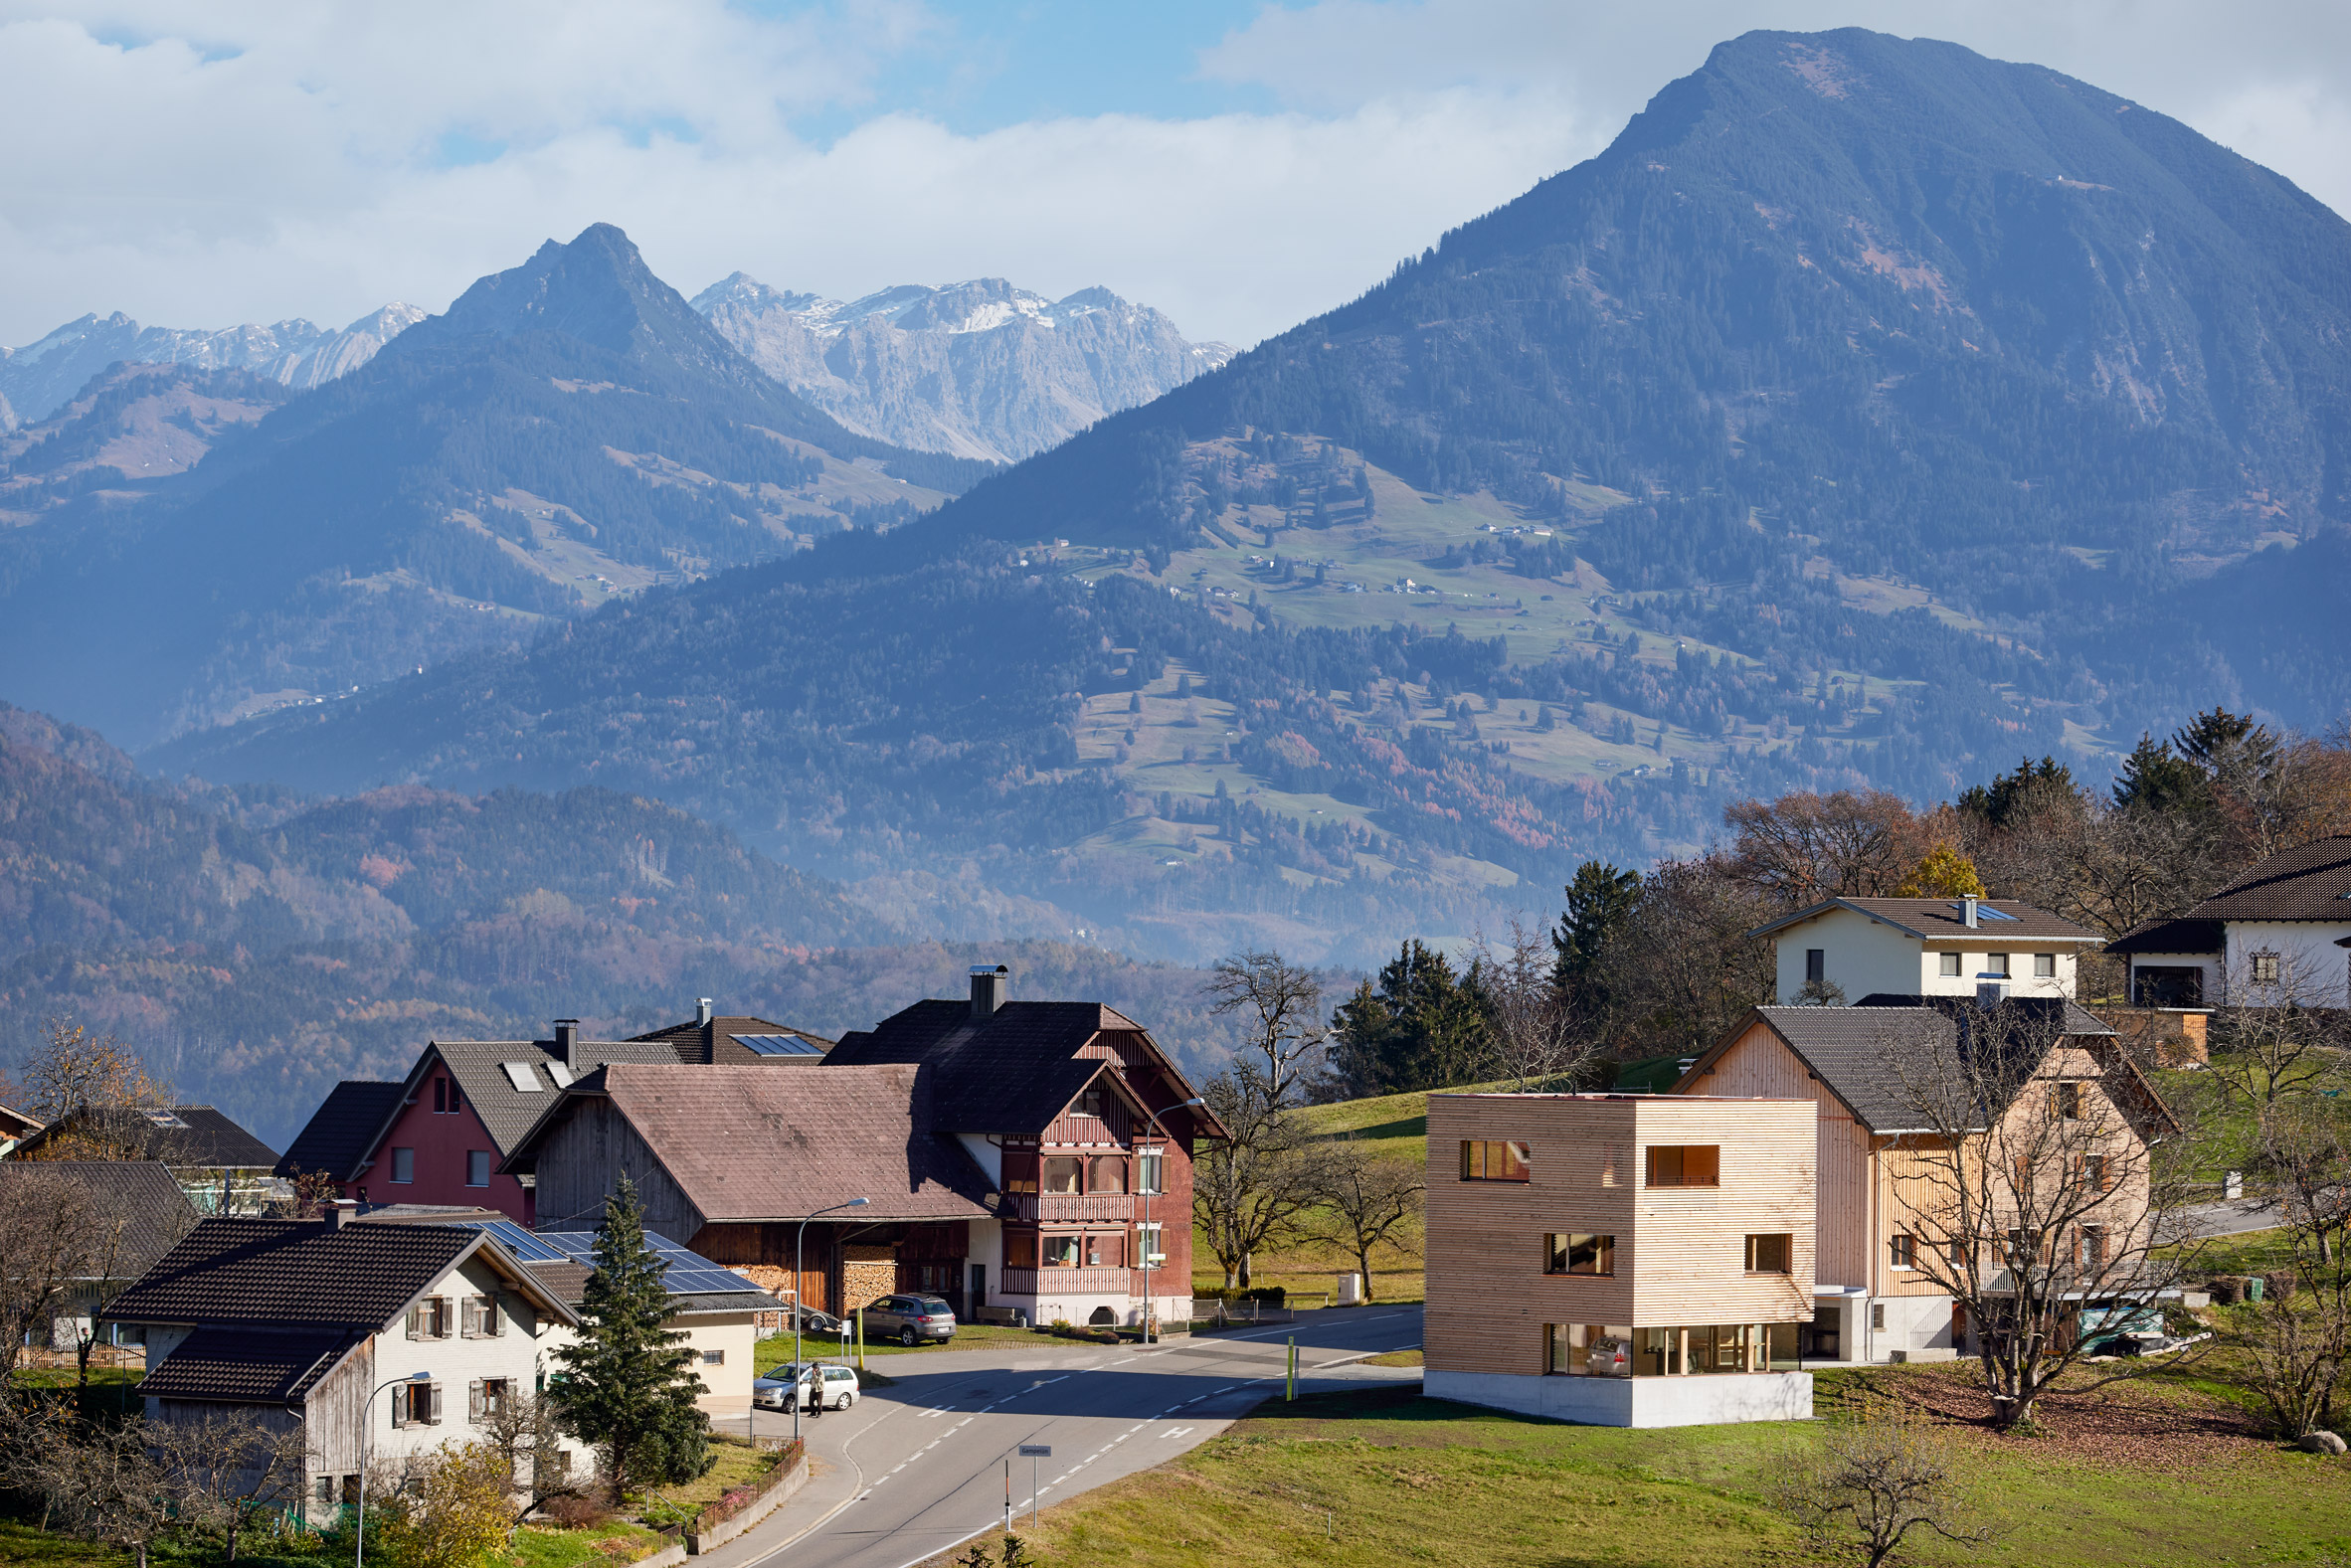 Austrian houses surrounded by Alpine landscape